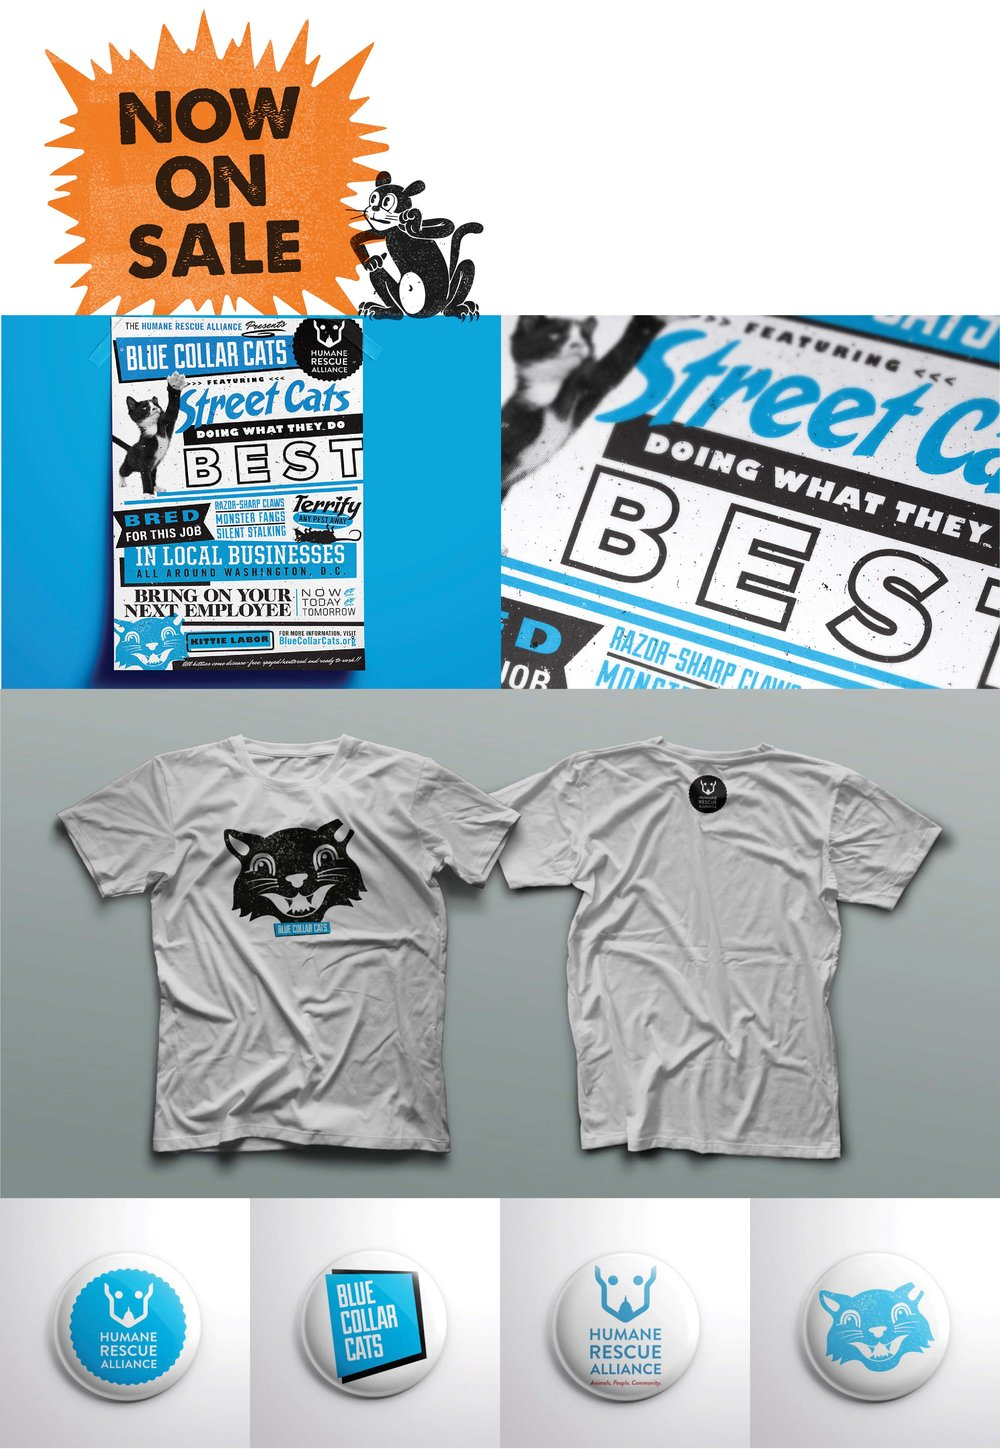 Buy swag here : humanerescuealliance.org/category/apparel            Blue Poster and swag // Roll: Creative Director // Art Director: Anthony Romano // Copy: Neil Pohl